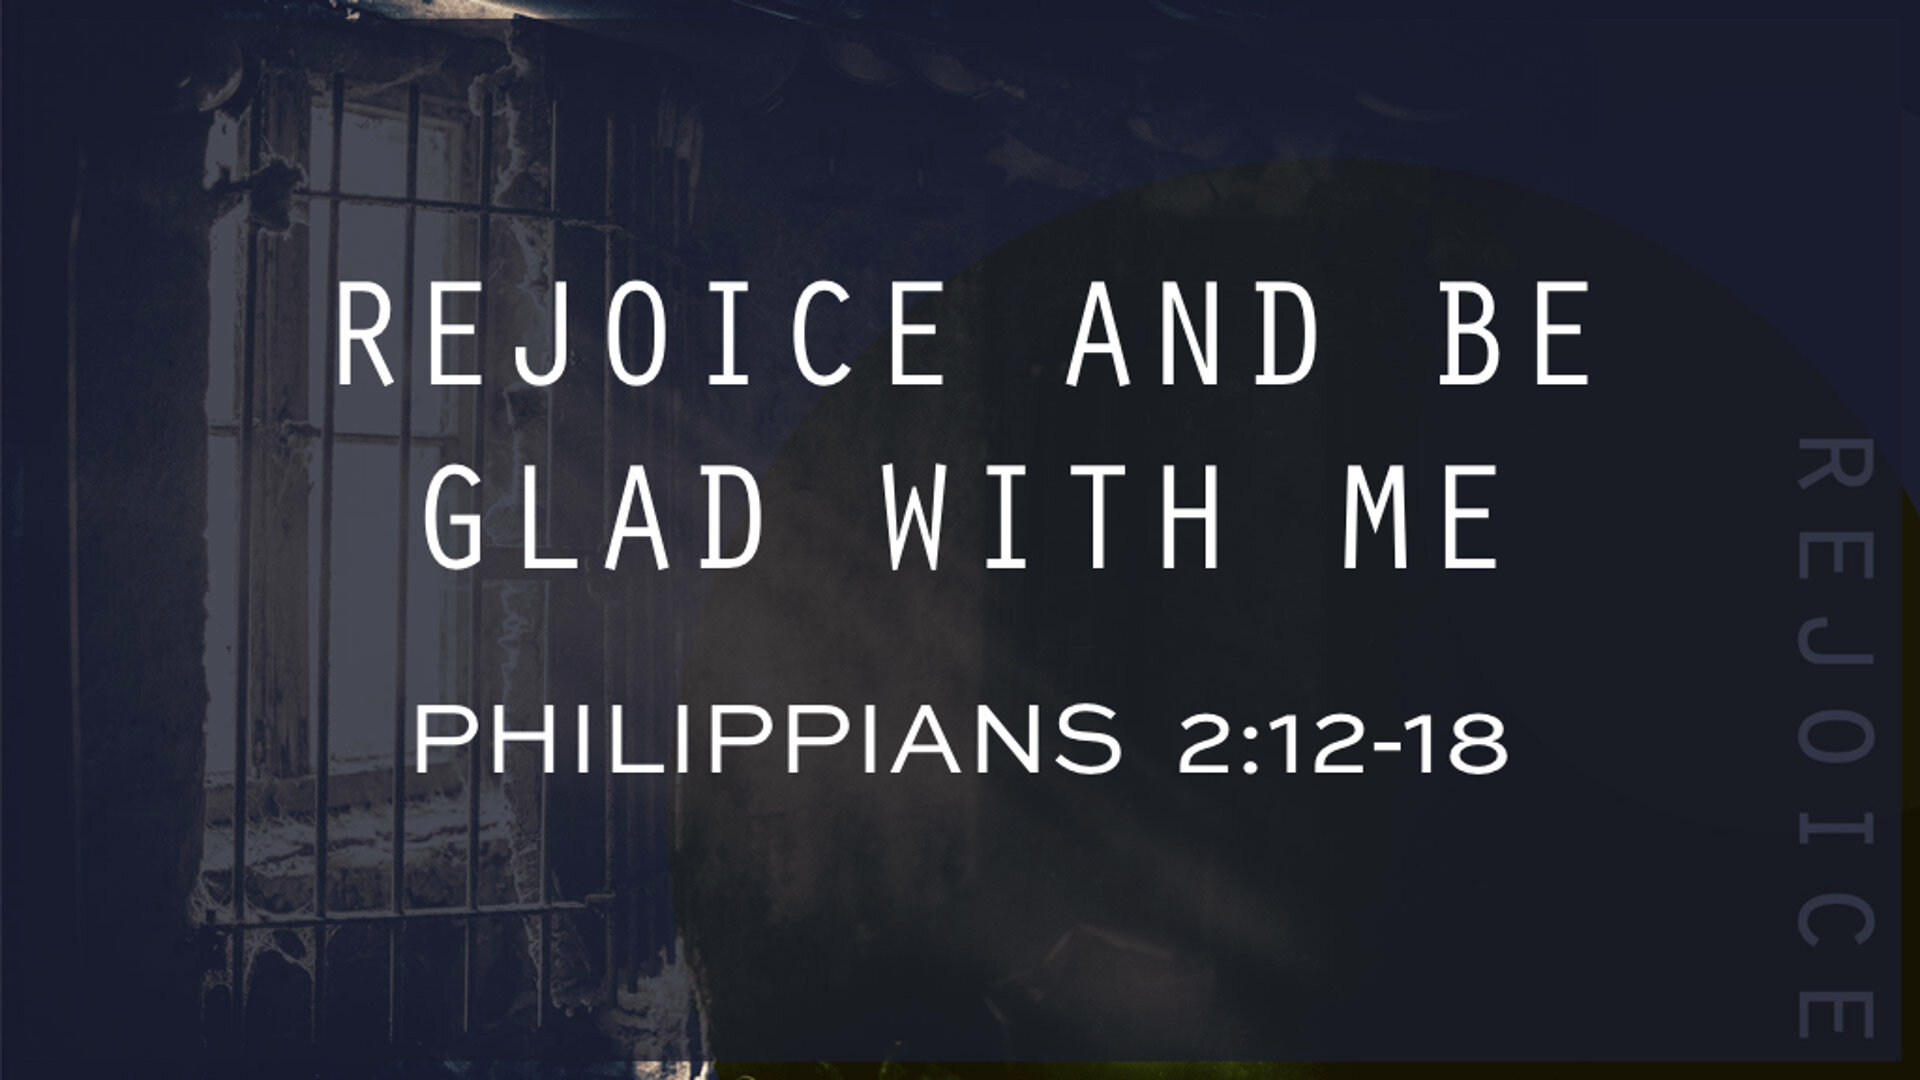 5. Phil 2.12-18 Rejoice and Be Glad.jpg